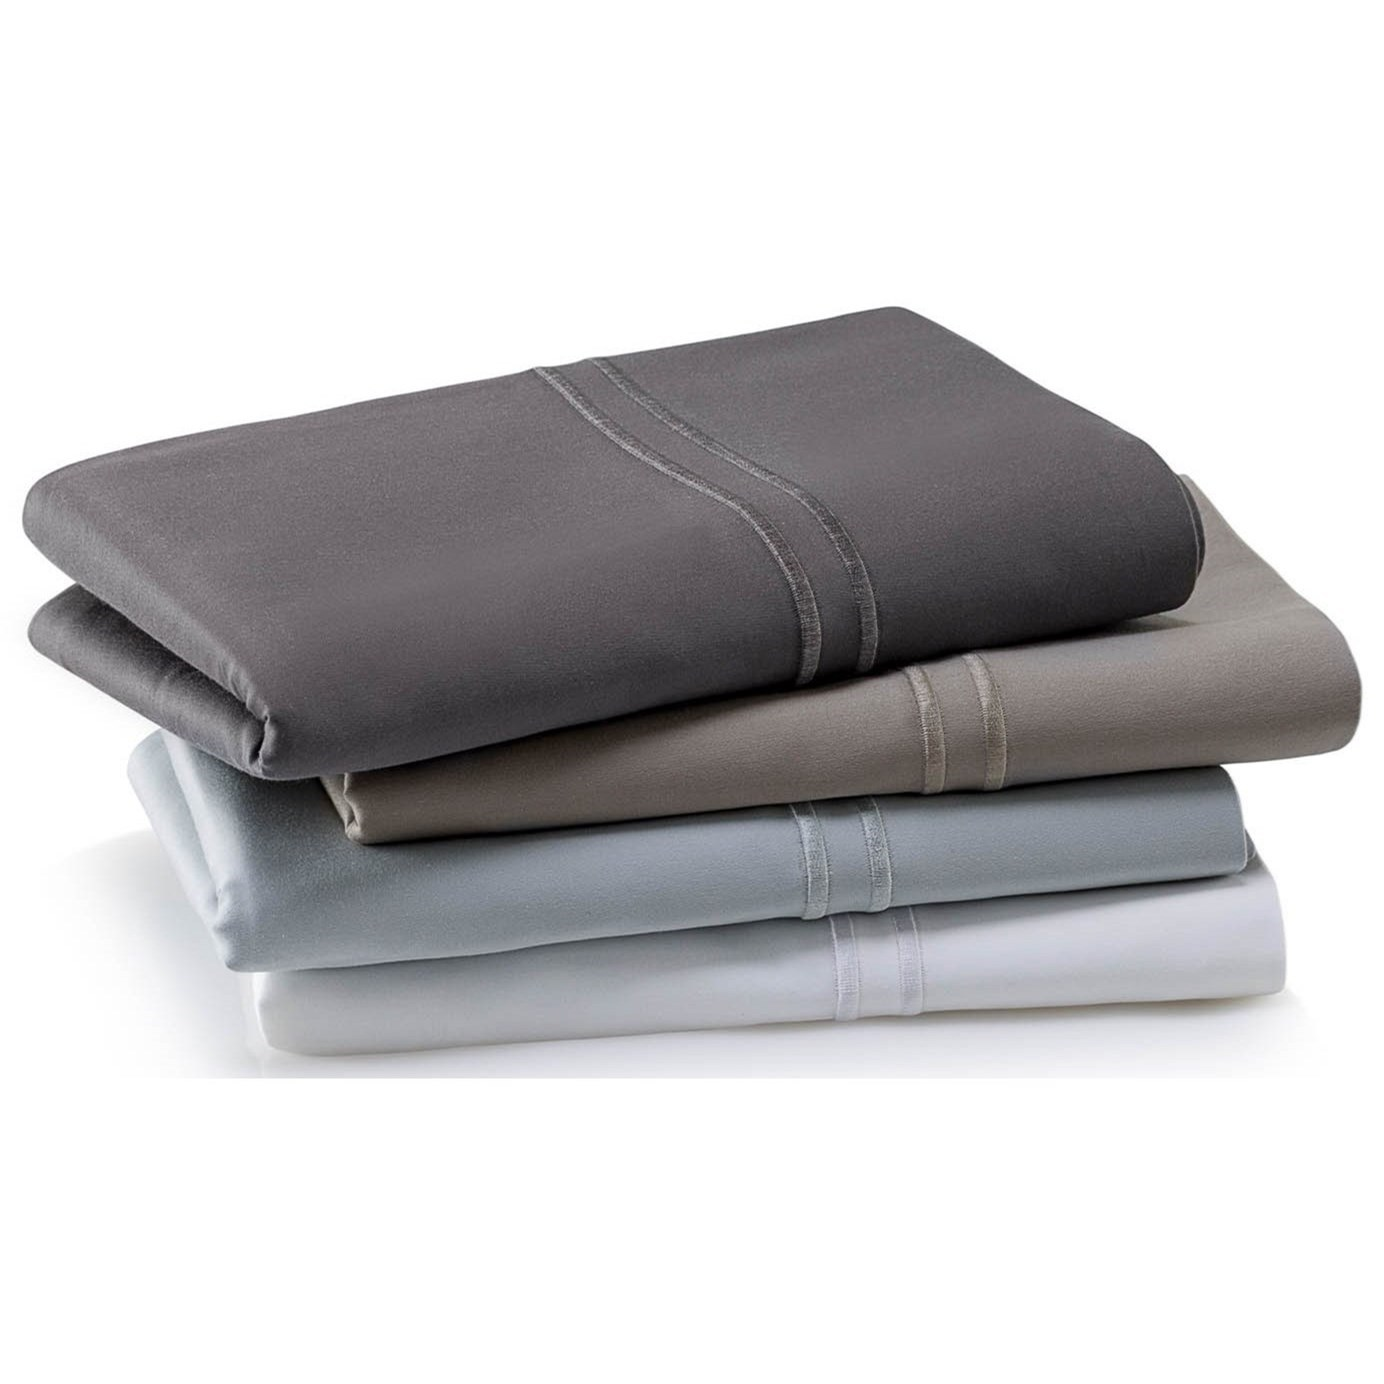 Supima Cotton Supima Cotton Sheets Split King by Malouf at Beds N Stuff